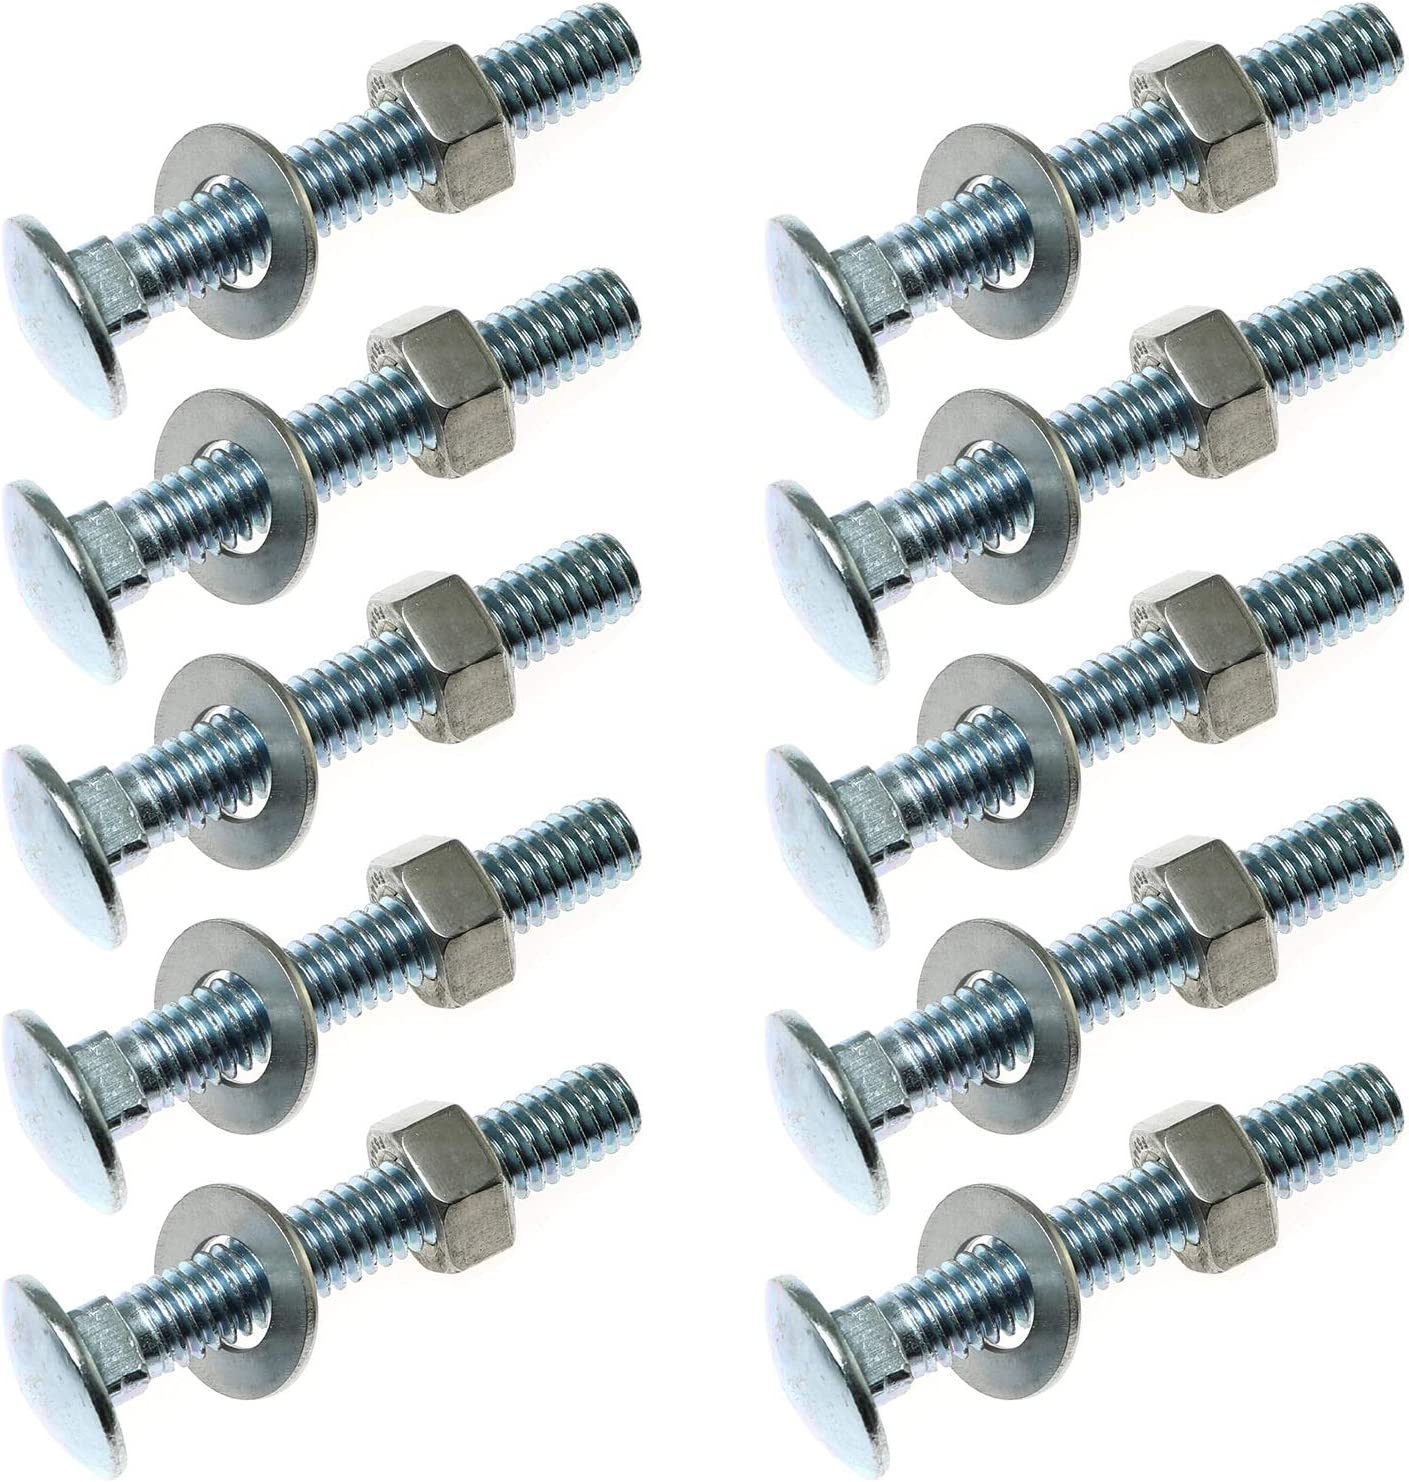 PSCCO 10Set 1//4-20x2 Carriage Bolts Set Round Head Square Neck Screws with Nuts and Washers